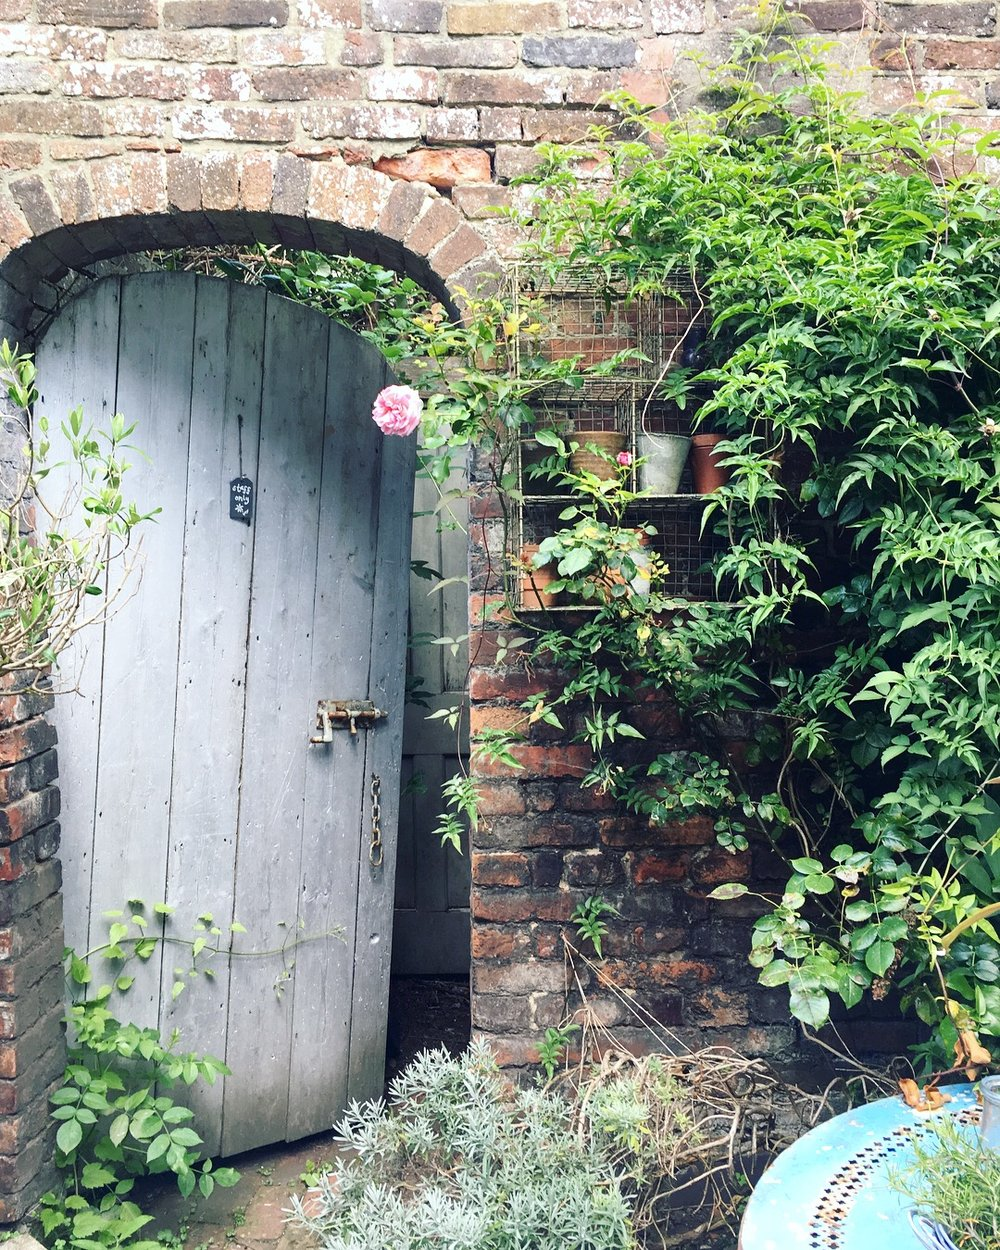 The gorgeous  Closet & Botts  in Lewes, East Sussex has a lovely courtyard with my favourite - an old wooden door in a brick wall!